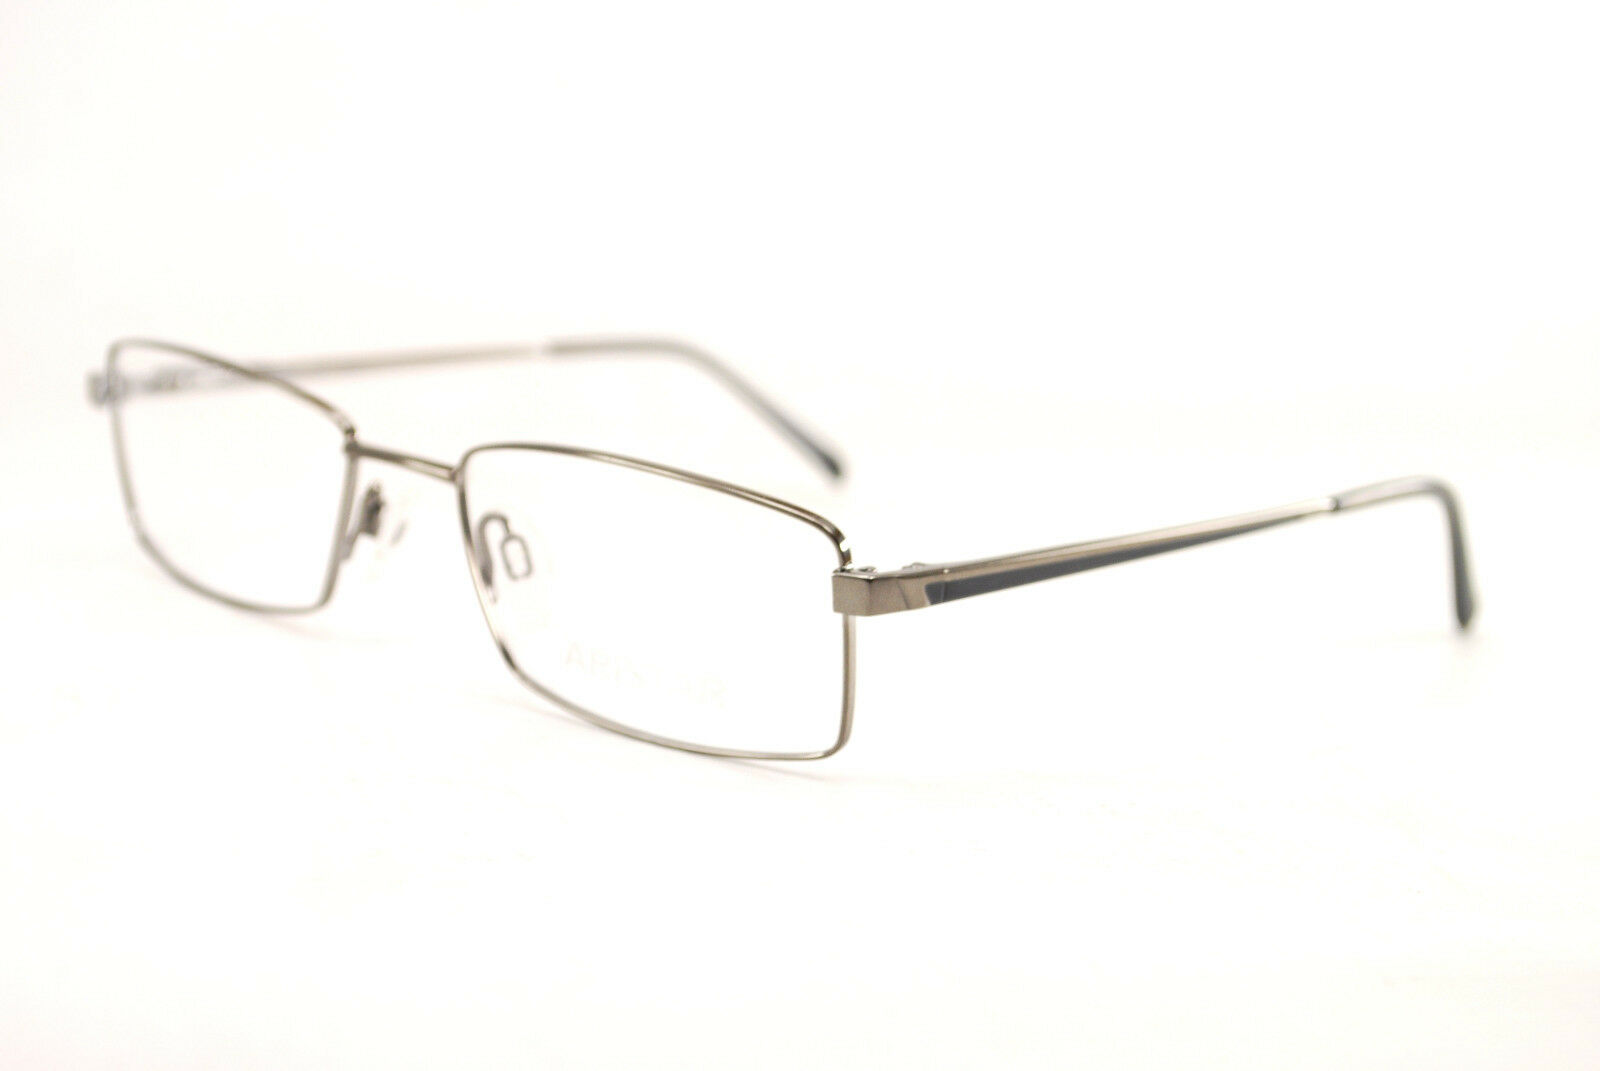 Austin Reed Ar R05 Glasses Frames Without Case And Cloth For Sale Ebay